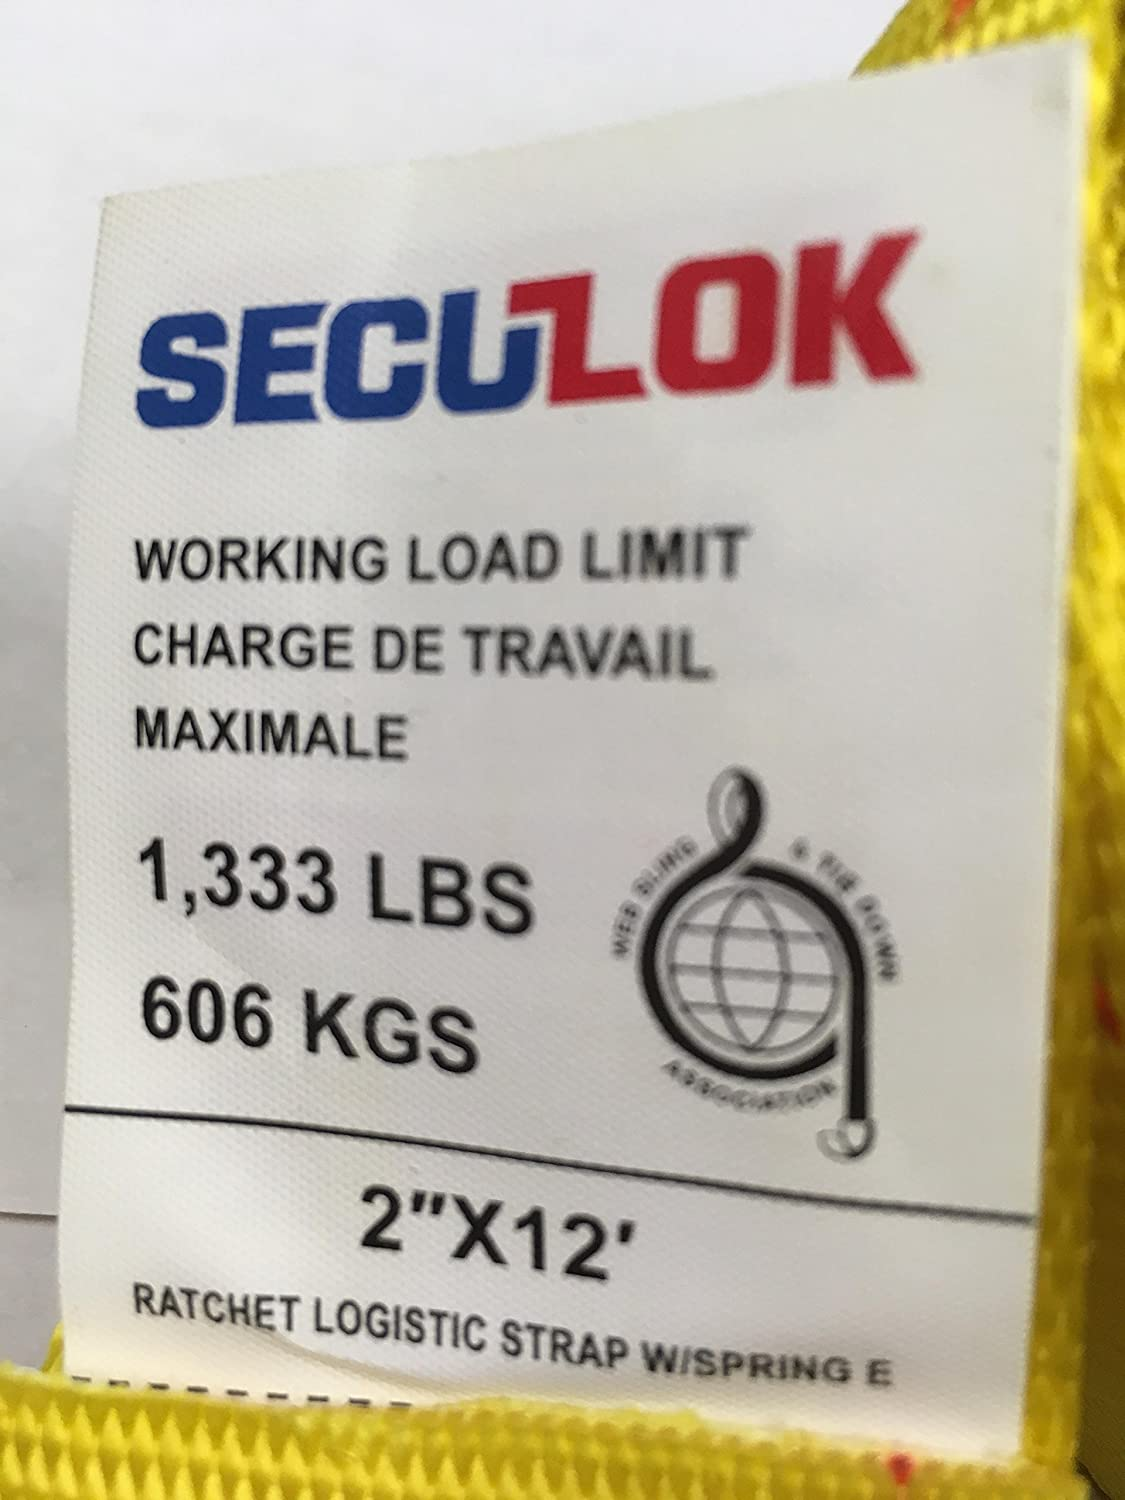 Seculok 2 x 12 Logistic Ratchet Etrack Strap with E//A Series Spring Fitting